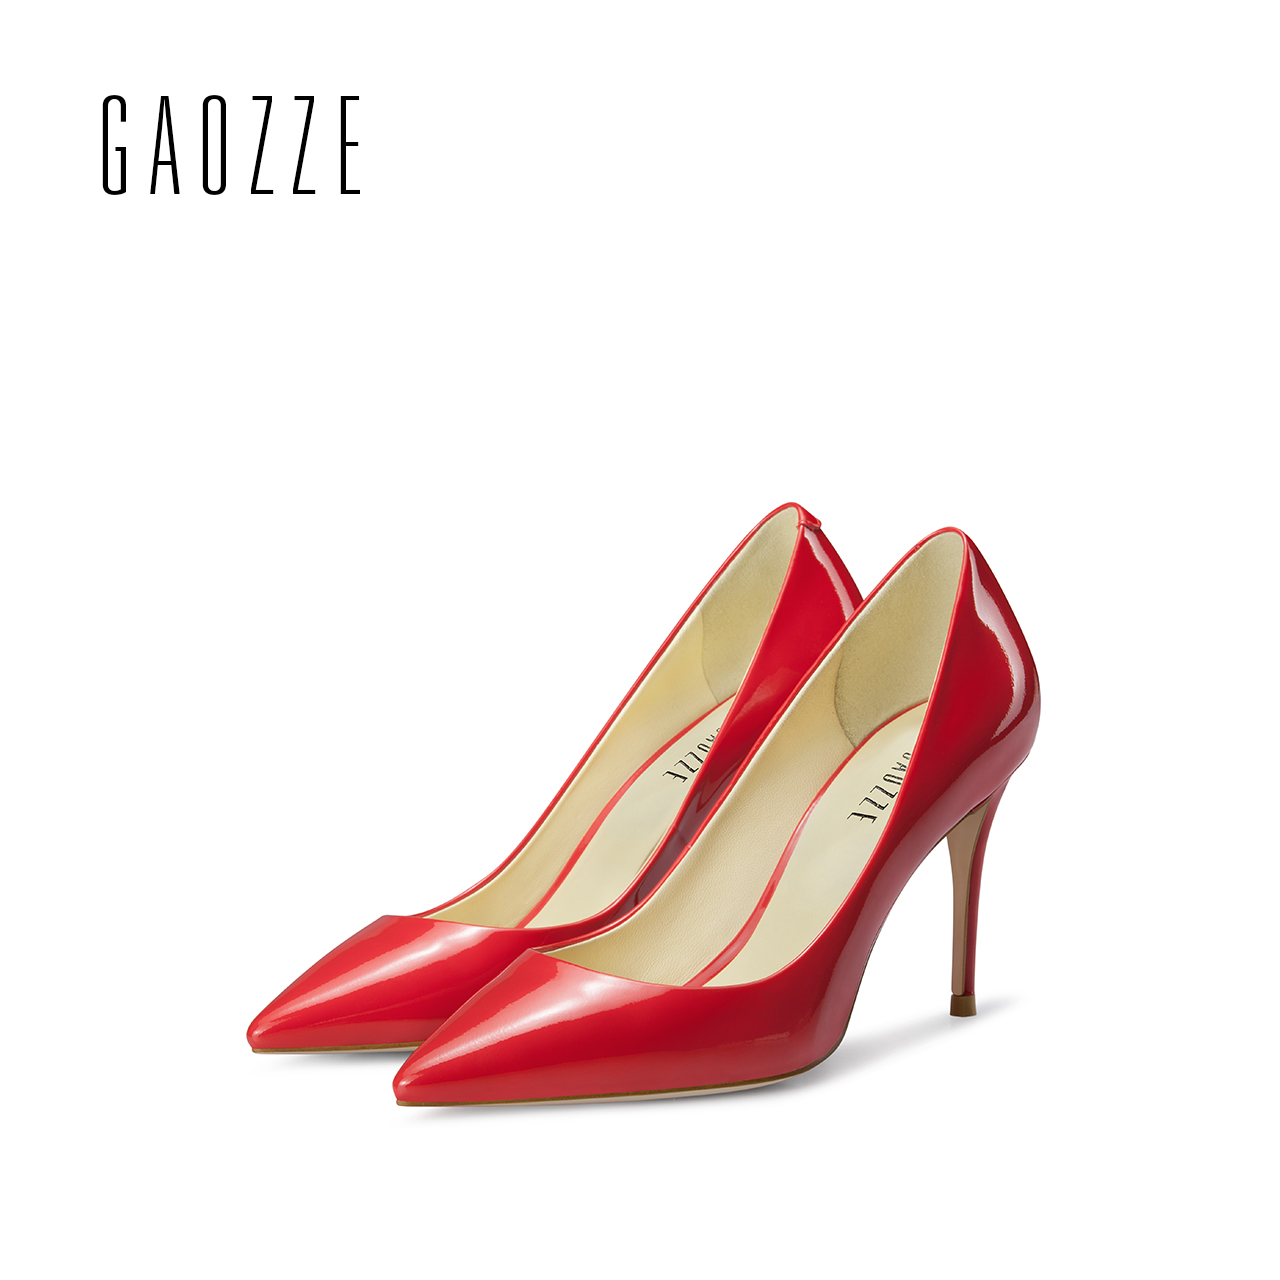 GAOZZE autumn women shoes high heel pumps leather red wedding shoes pointed toe high heels pump shoes sexy female shoes 2017 revell model 1 25 scale 85 7457 69 camaro z 28 rs plastic model kit